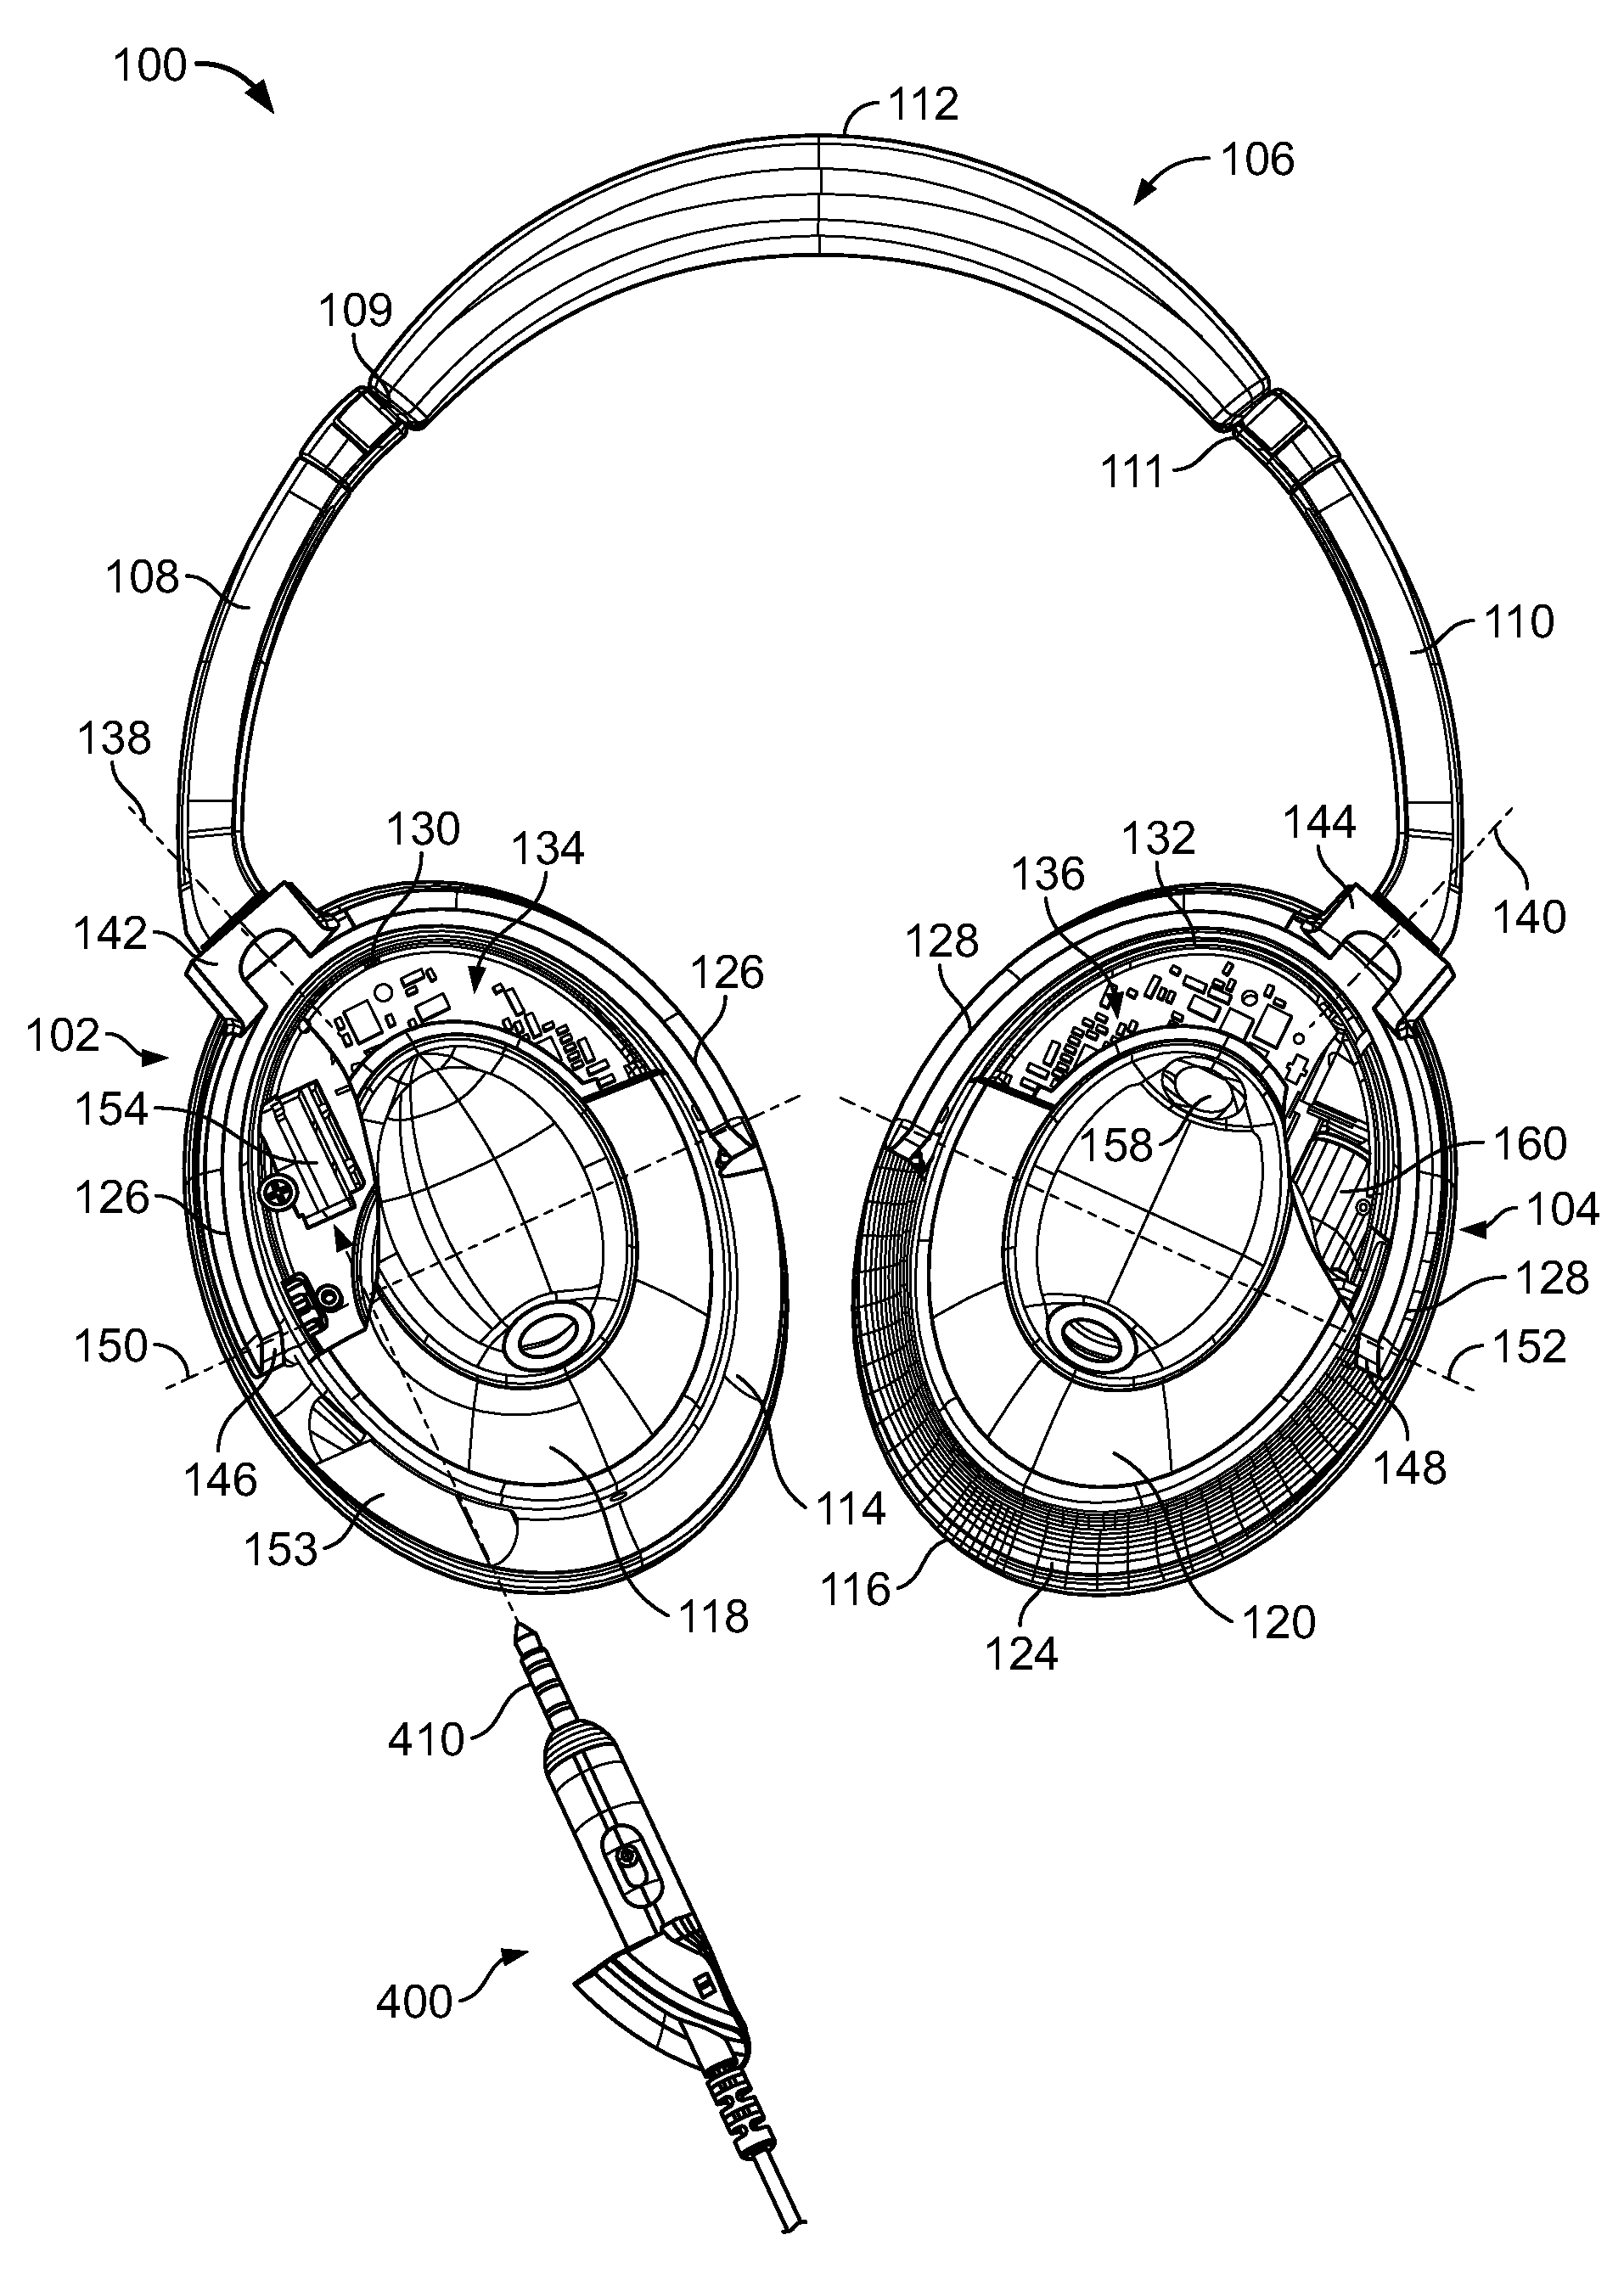 Wiring Diagram For Earbuds Library 3 Wire Headphone Jack Us08031878 20111004 D00000 Patent Us8031878 Electronic Interfacing With A Head Mounted Bose